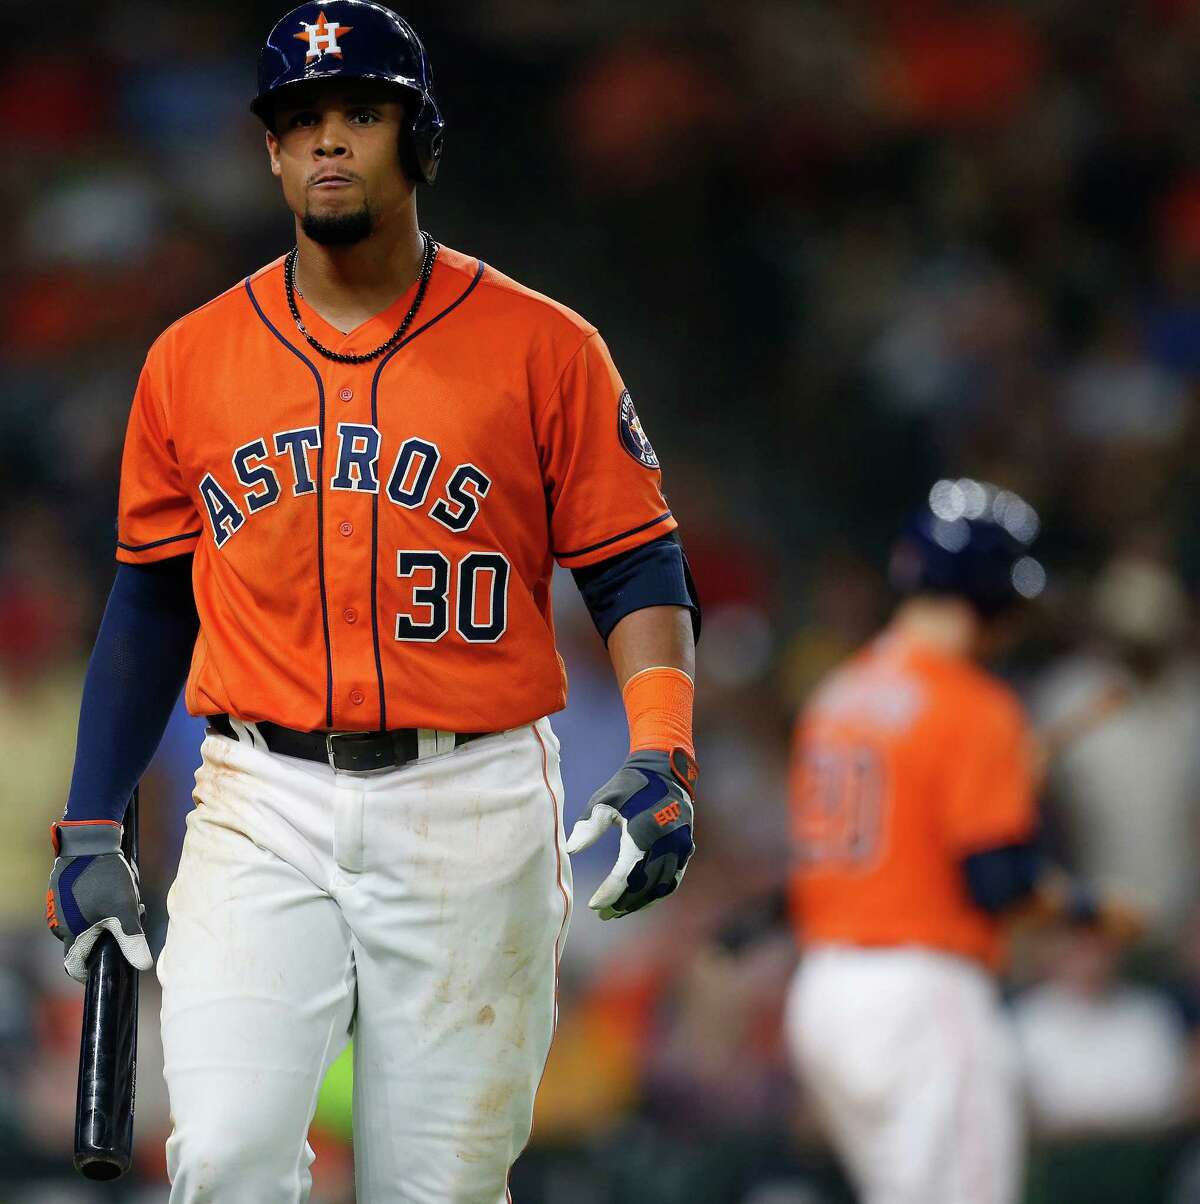 Before he was cut loose Wednesday, Carlos Gomez's rough 2016 season includes a pair of defensive blunders in Minnesota this week that cost the Astros in a loss to the Twins. Click through the gallery to see the most disappointing acquisitions in Astros history.